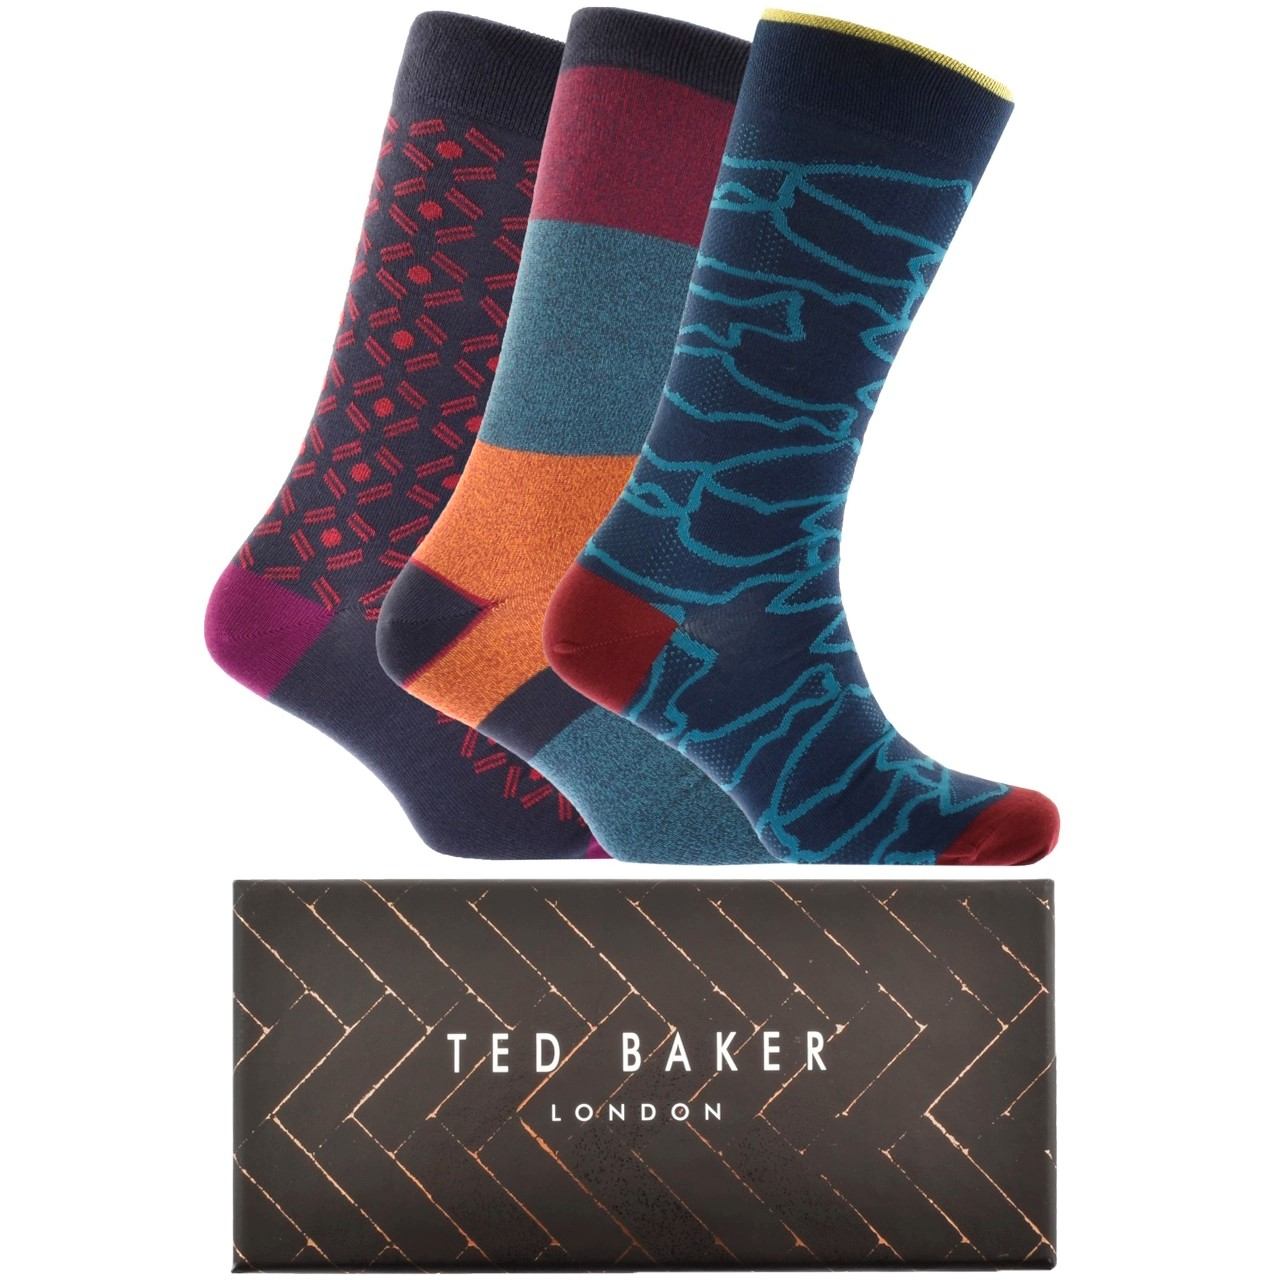 three Ted Baker socks in blue and red patterns